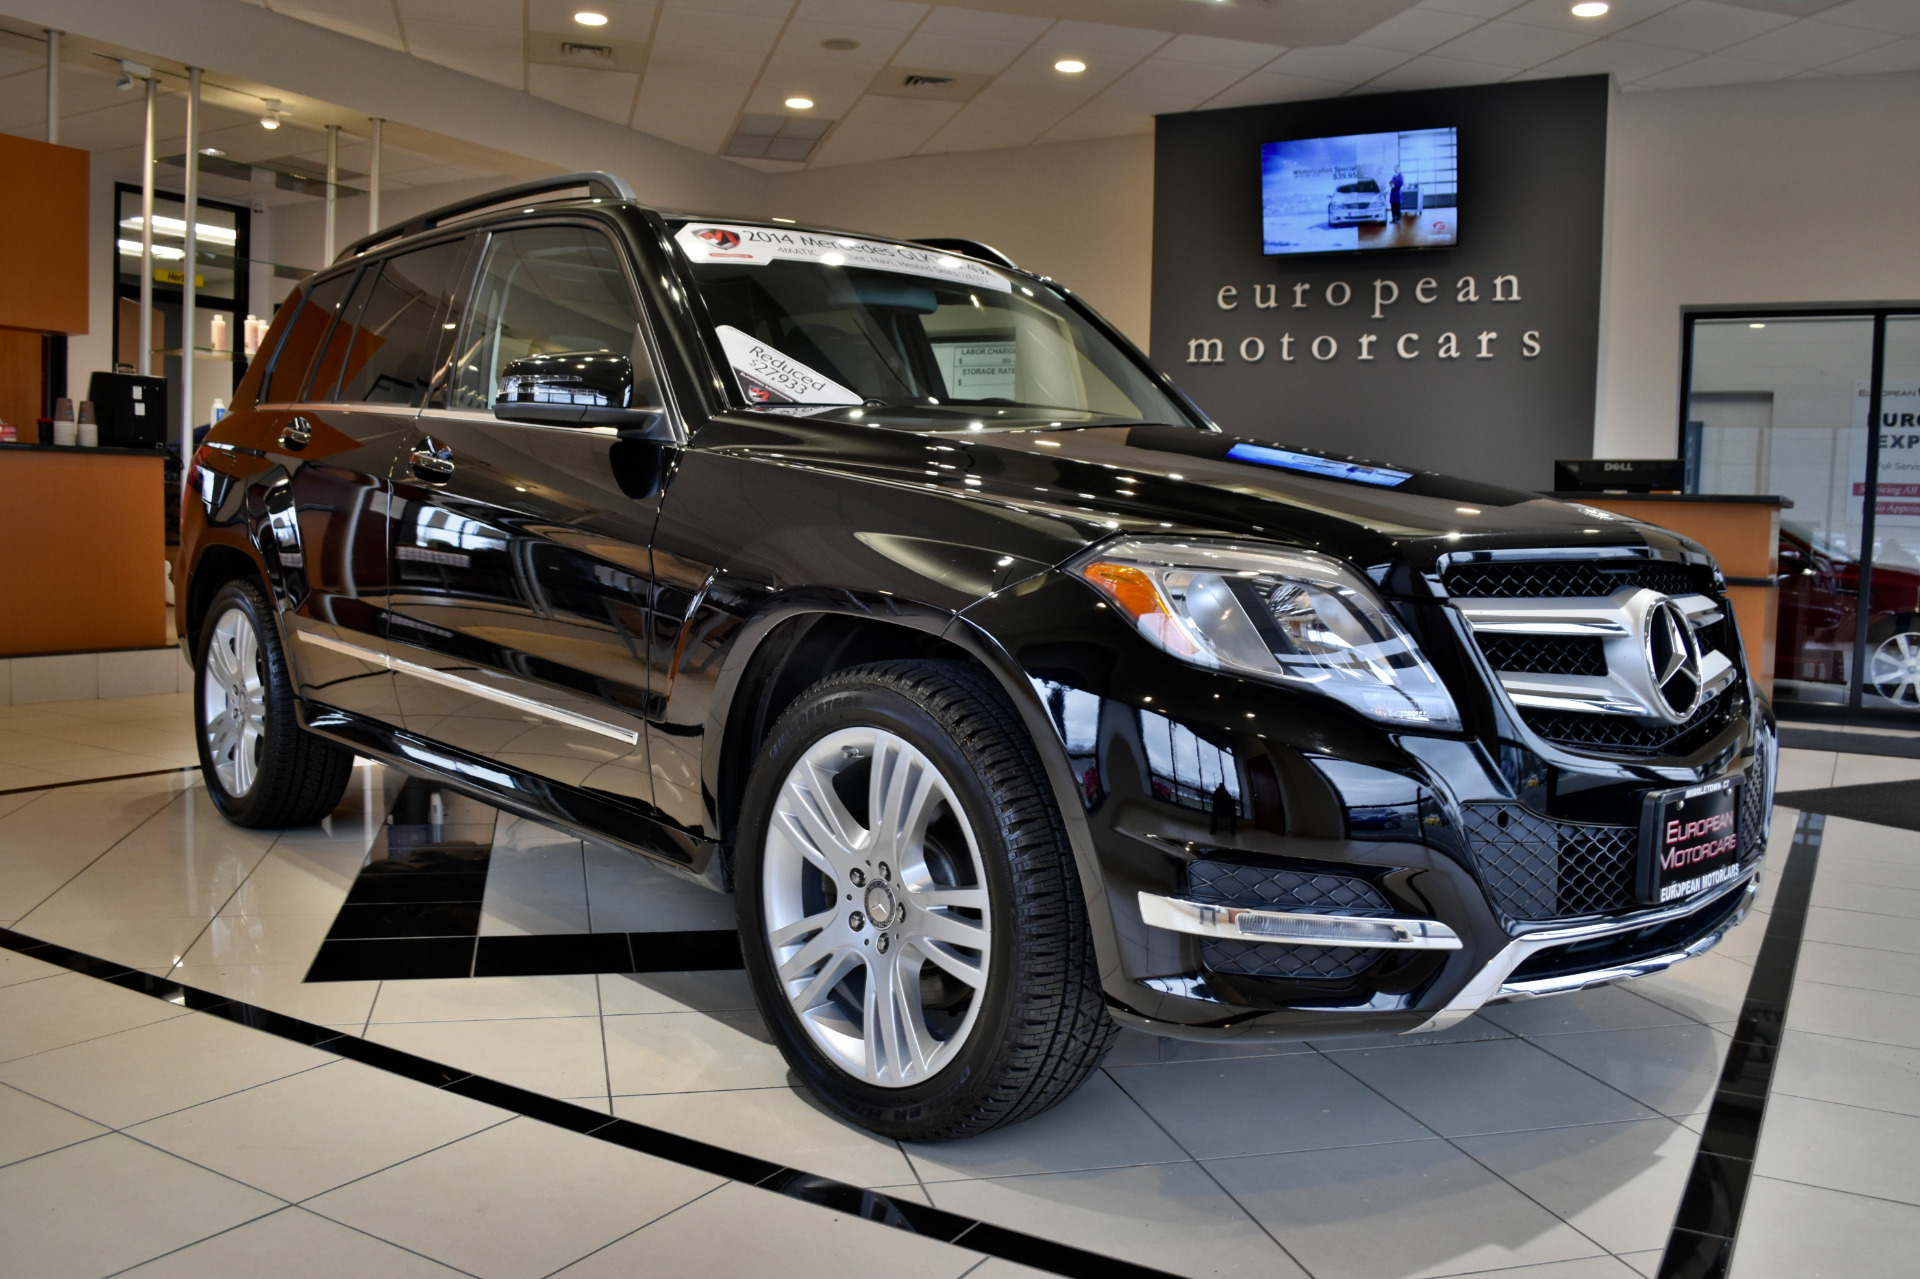 2014 mercedes benz glk glk350 4matic for sale near for Euro motorcars mercedes benz